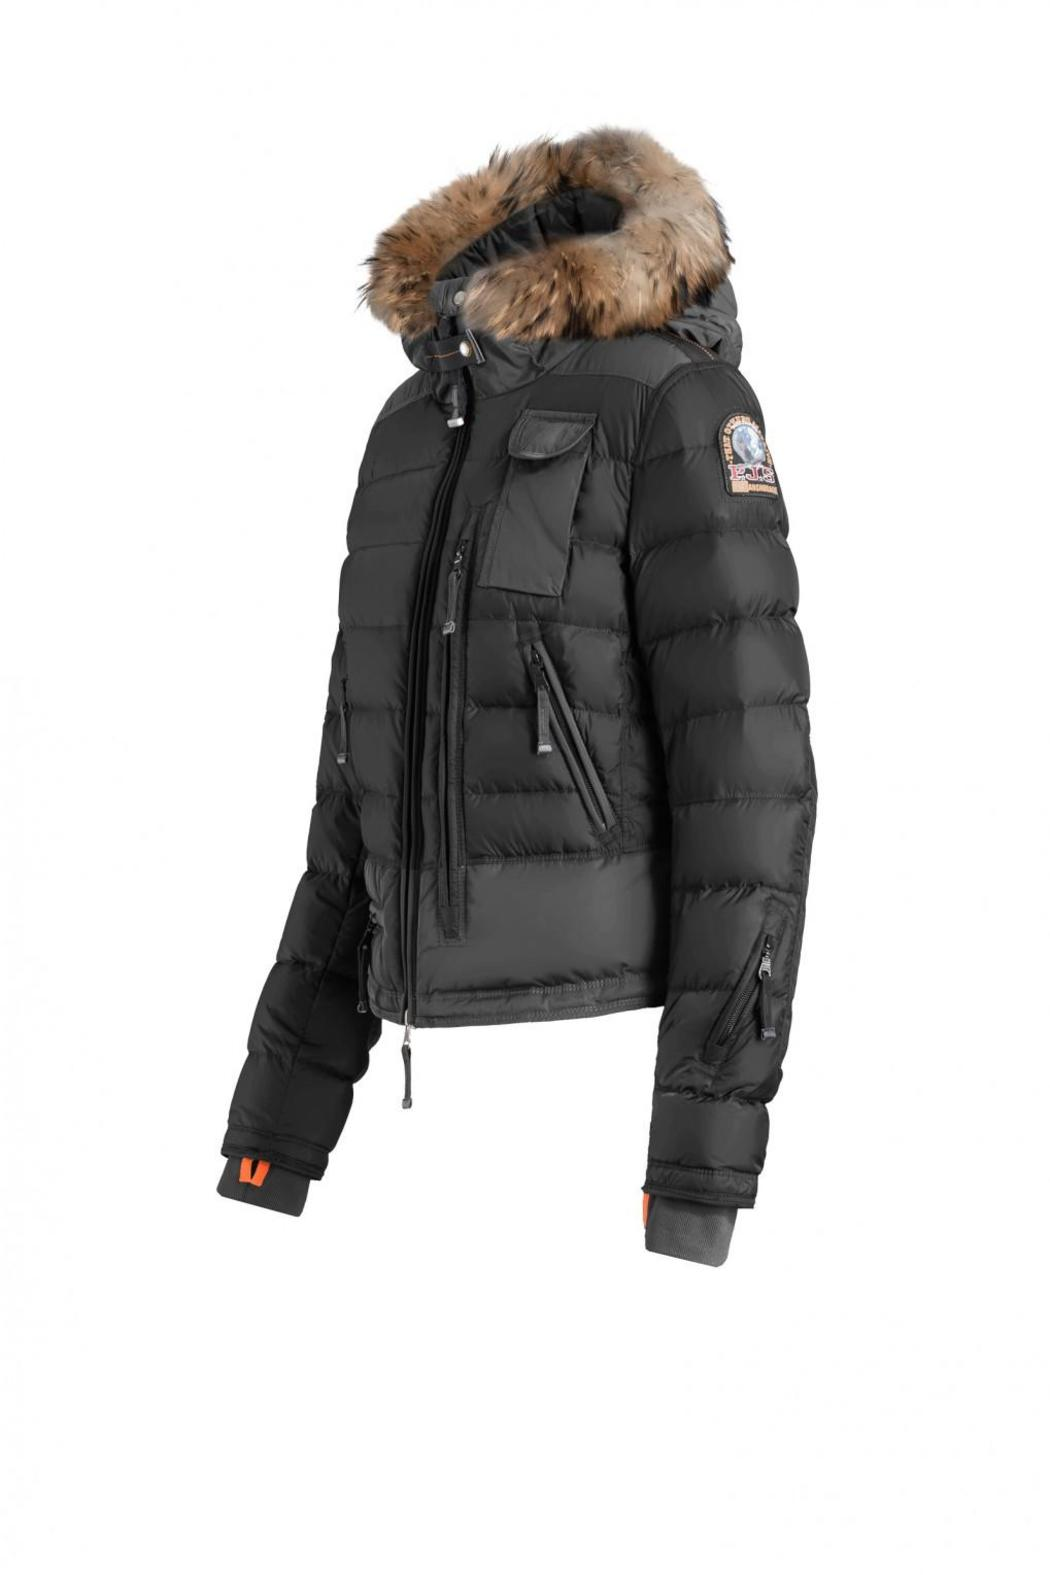 parajumpers third skimaster jacket